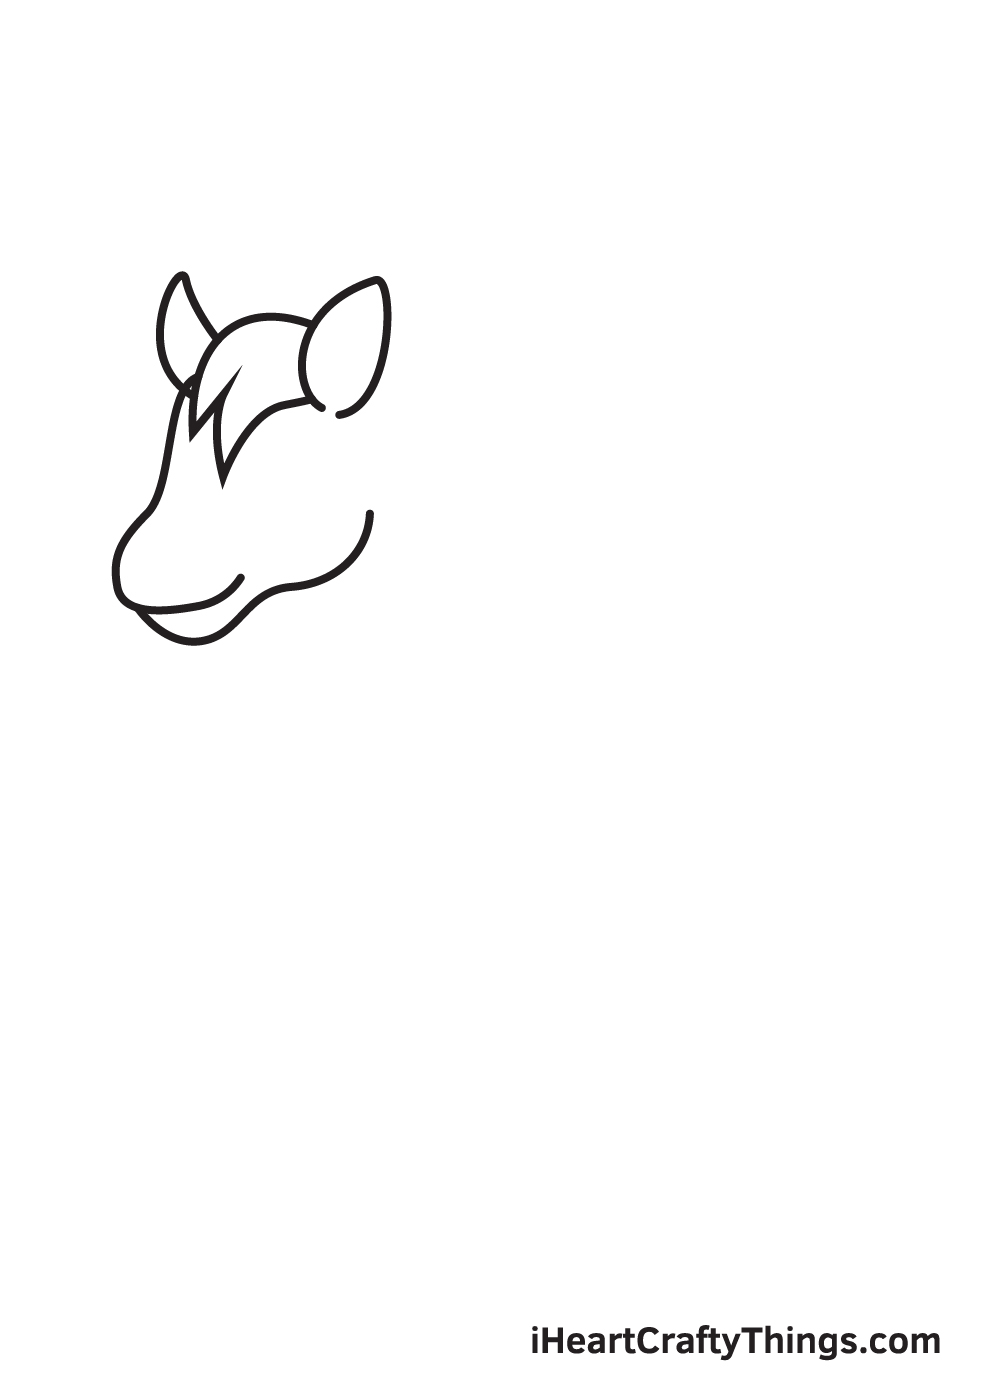 horse drawing - step 2